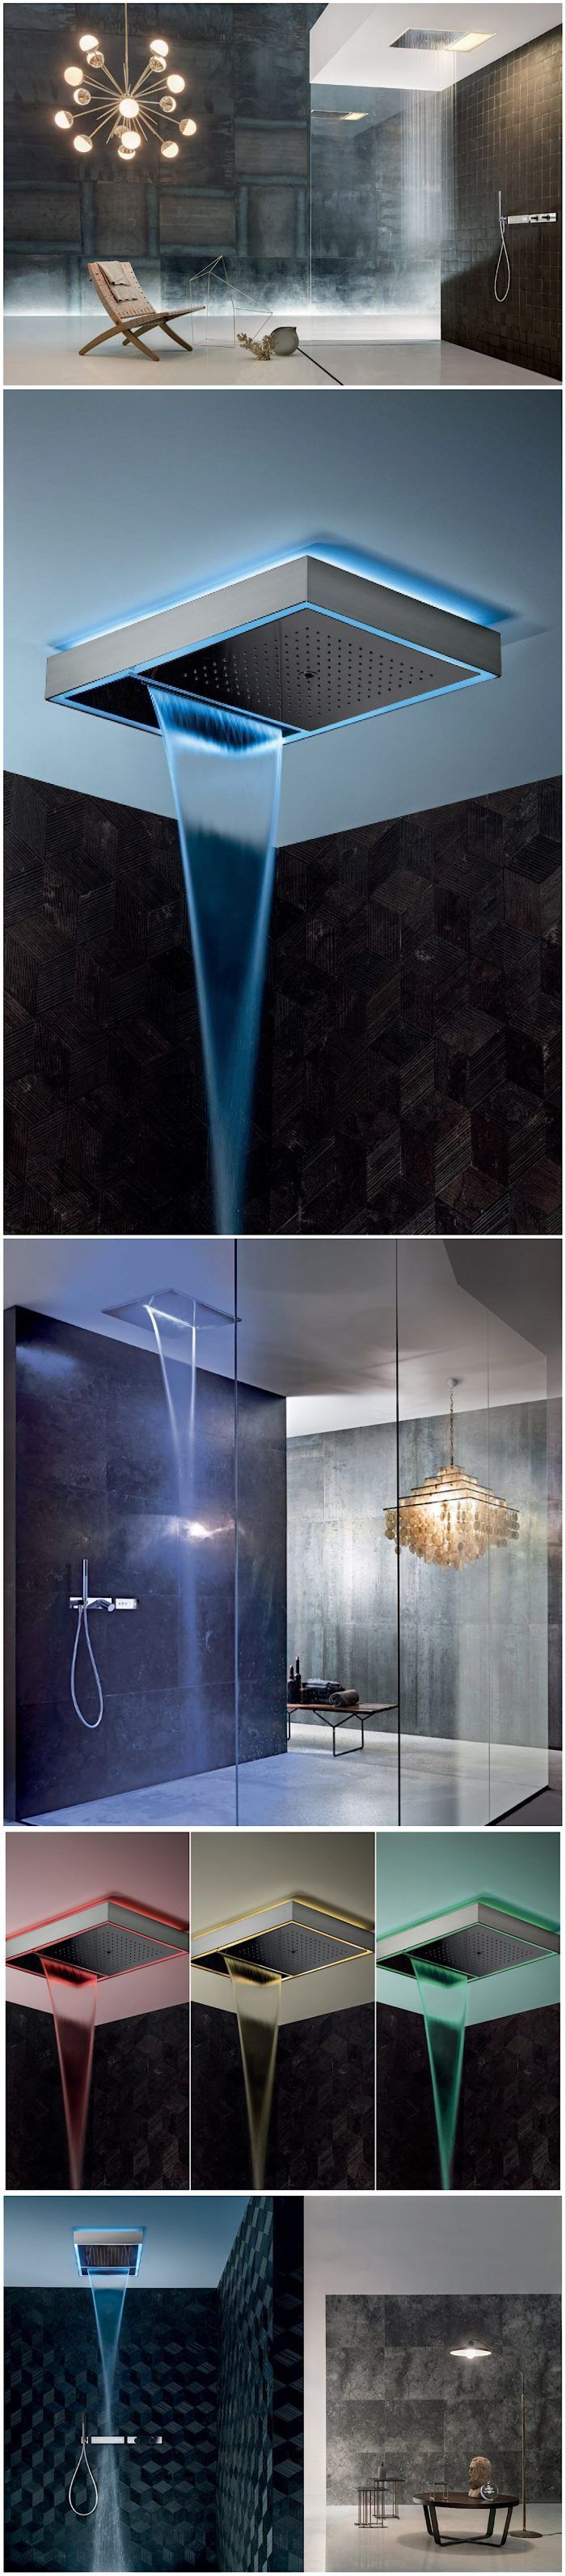 The Aquadolce Multifunctional Shower | Multifunctional, Awesome ...